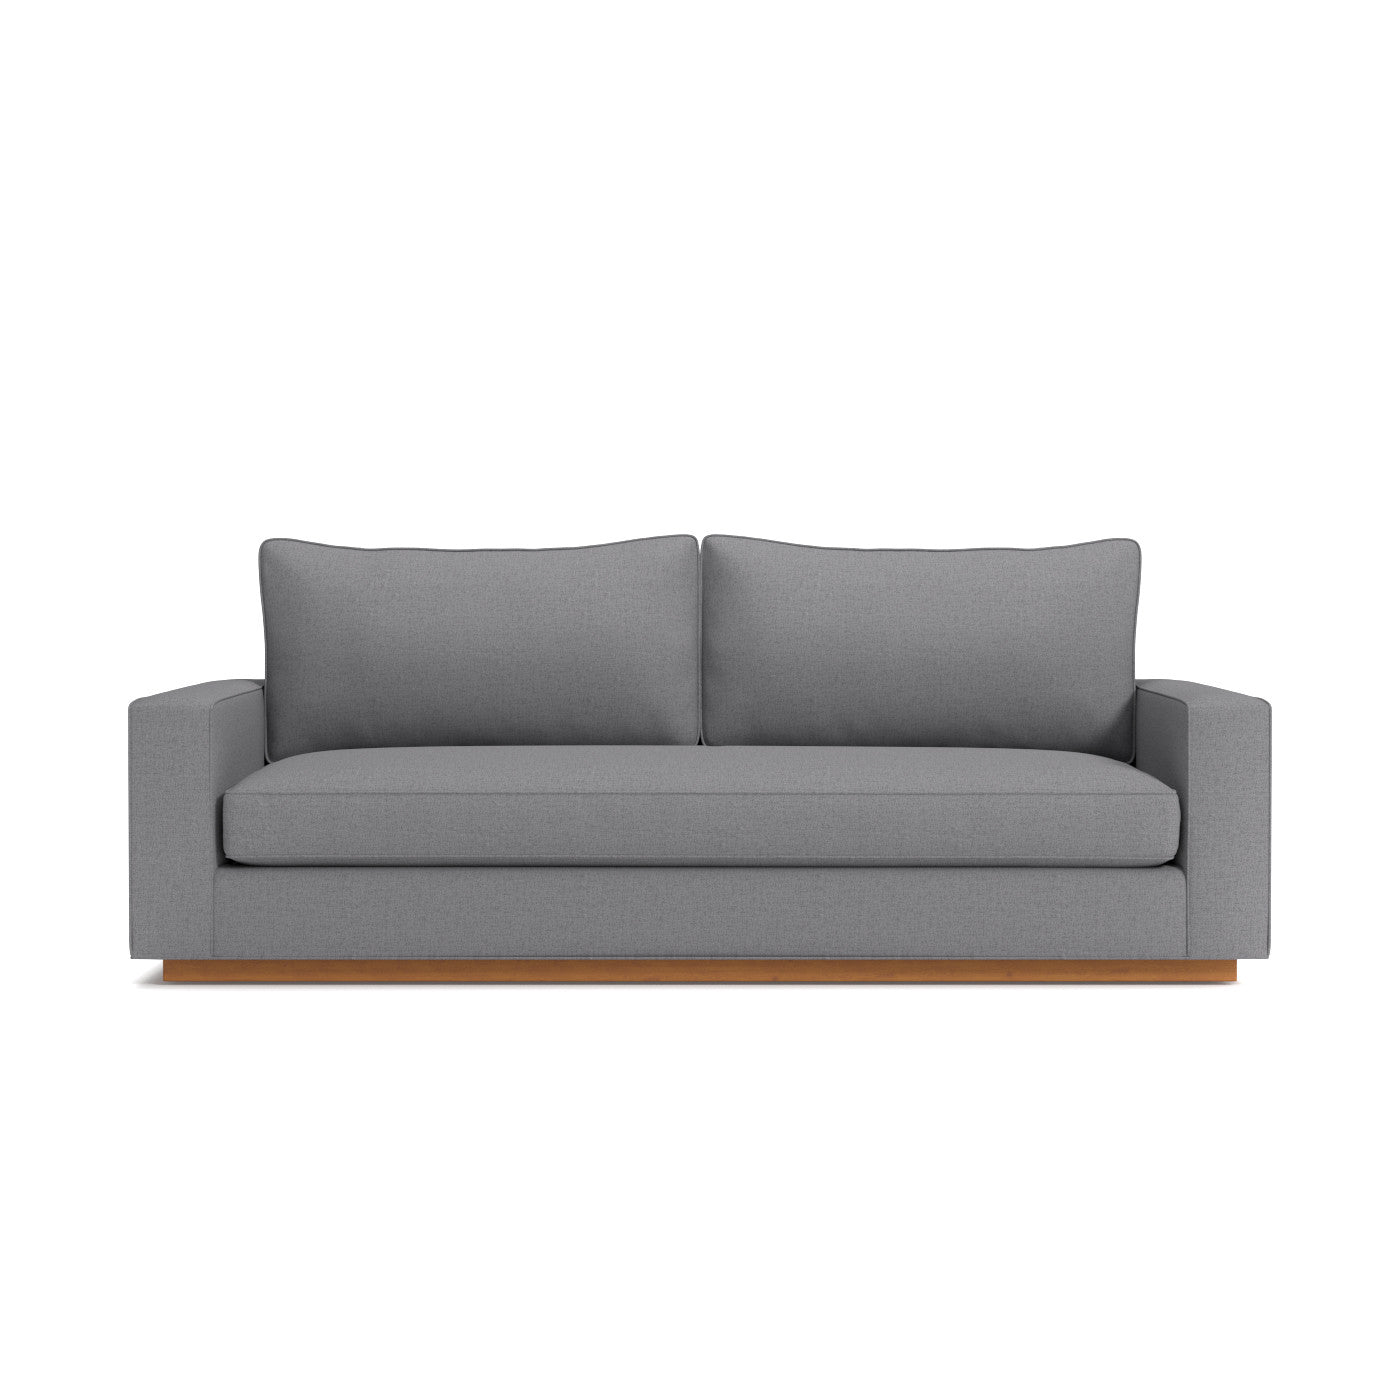 Harper Sleeper Sofa Queen Size CHOICE OF FABRICS